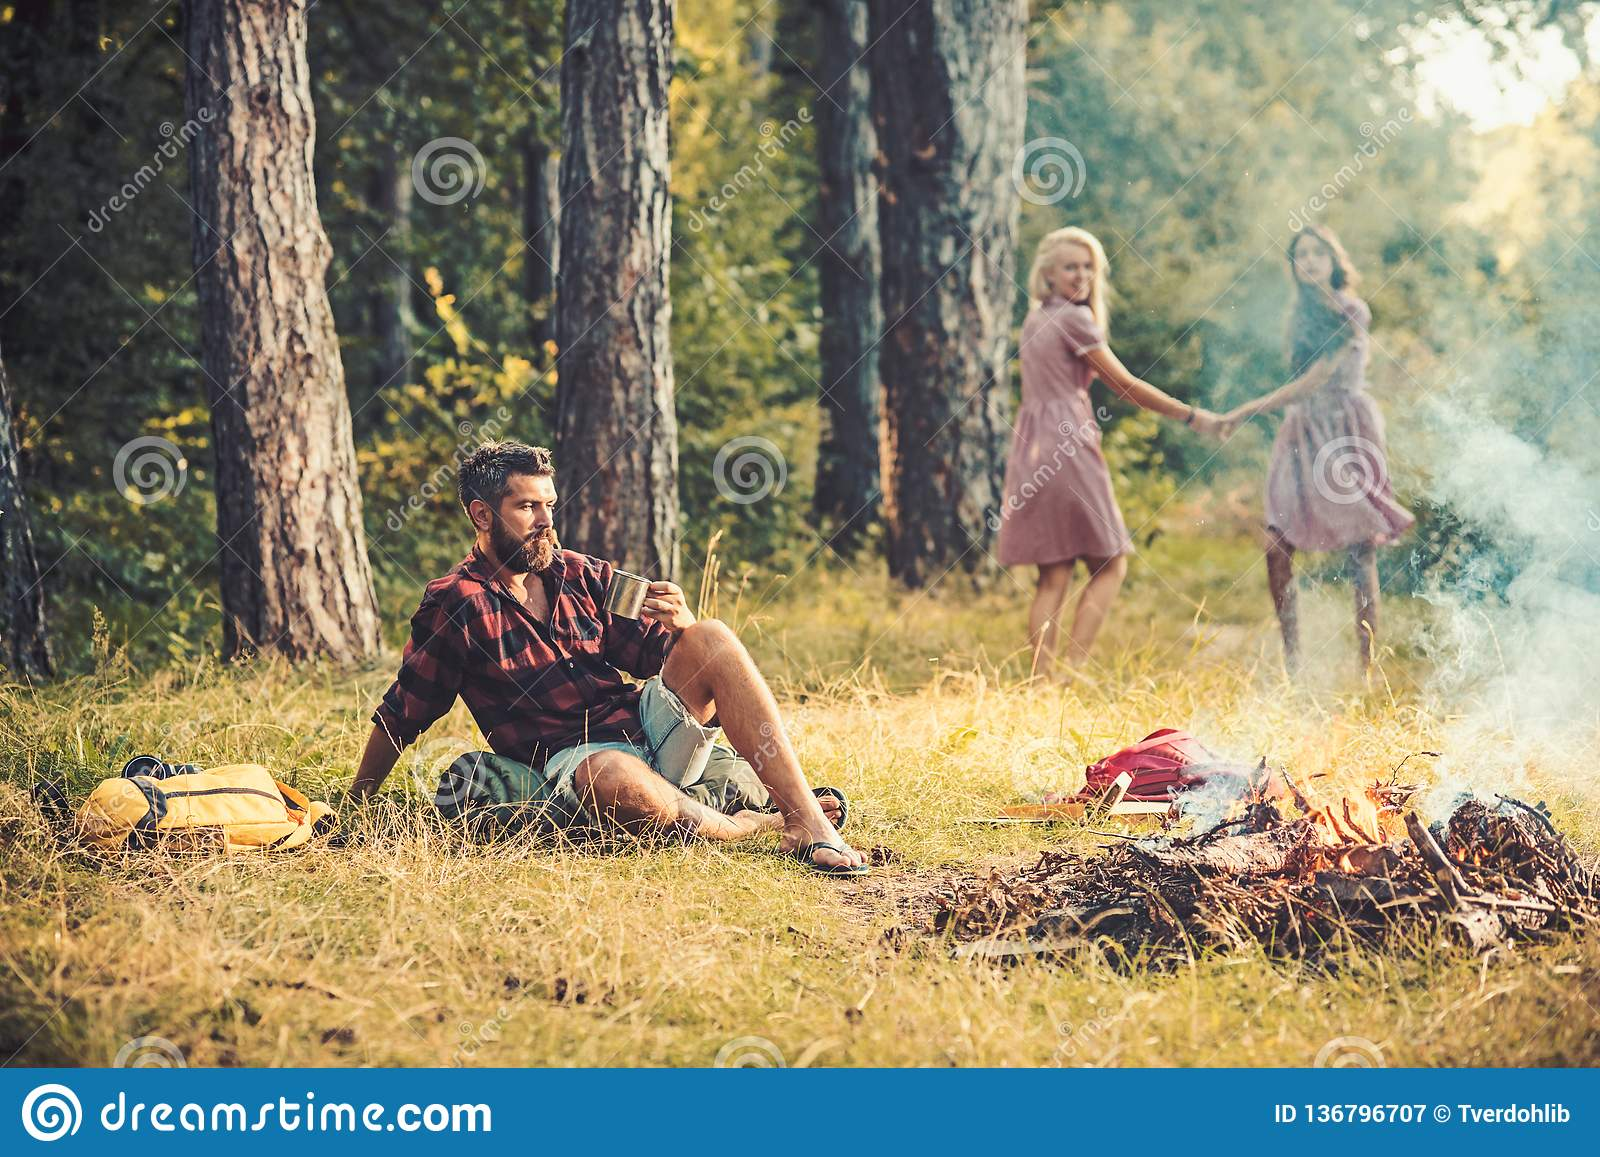 Bearded man drink tea or coffee at bonfire with women on blurred background. Bearded man sit at campfire